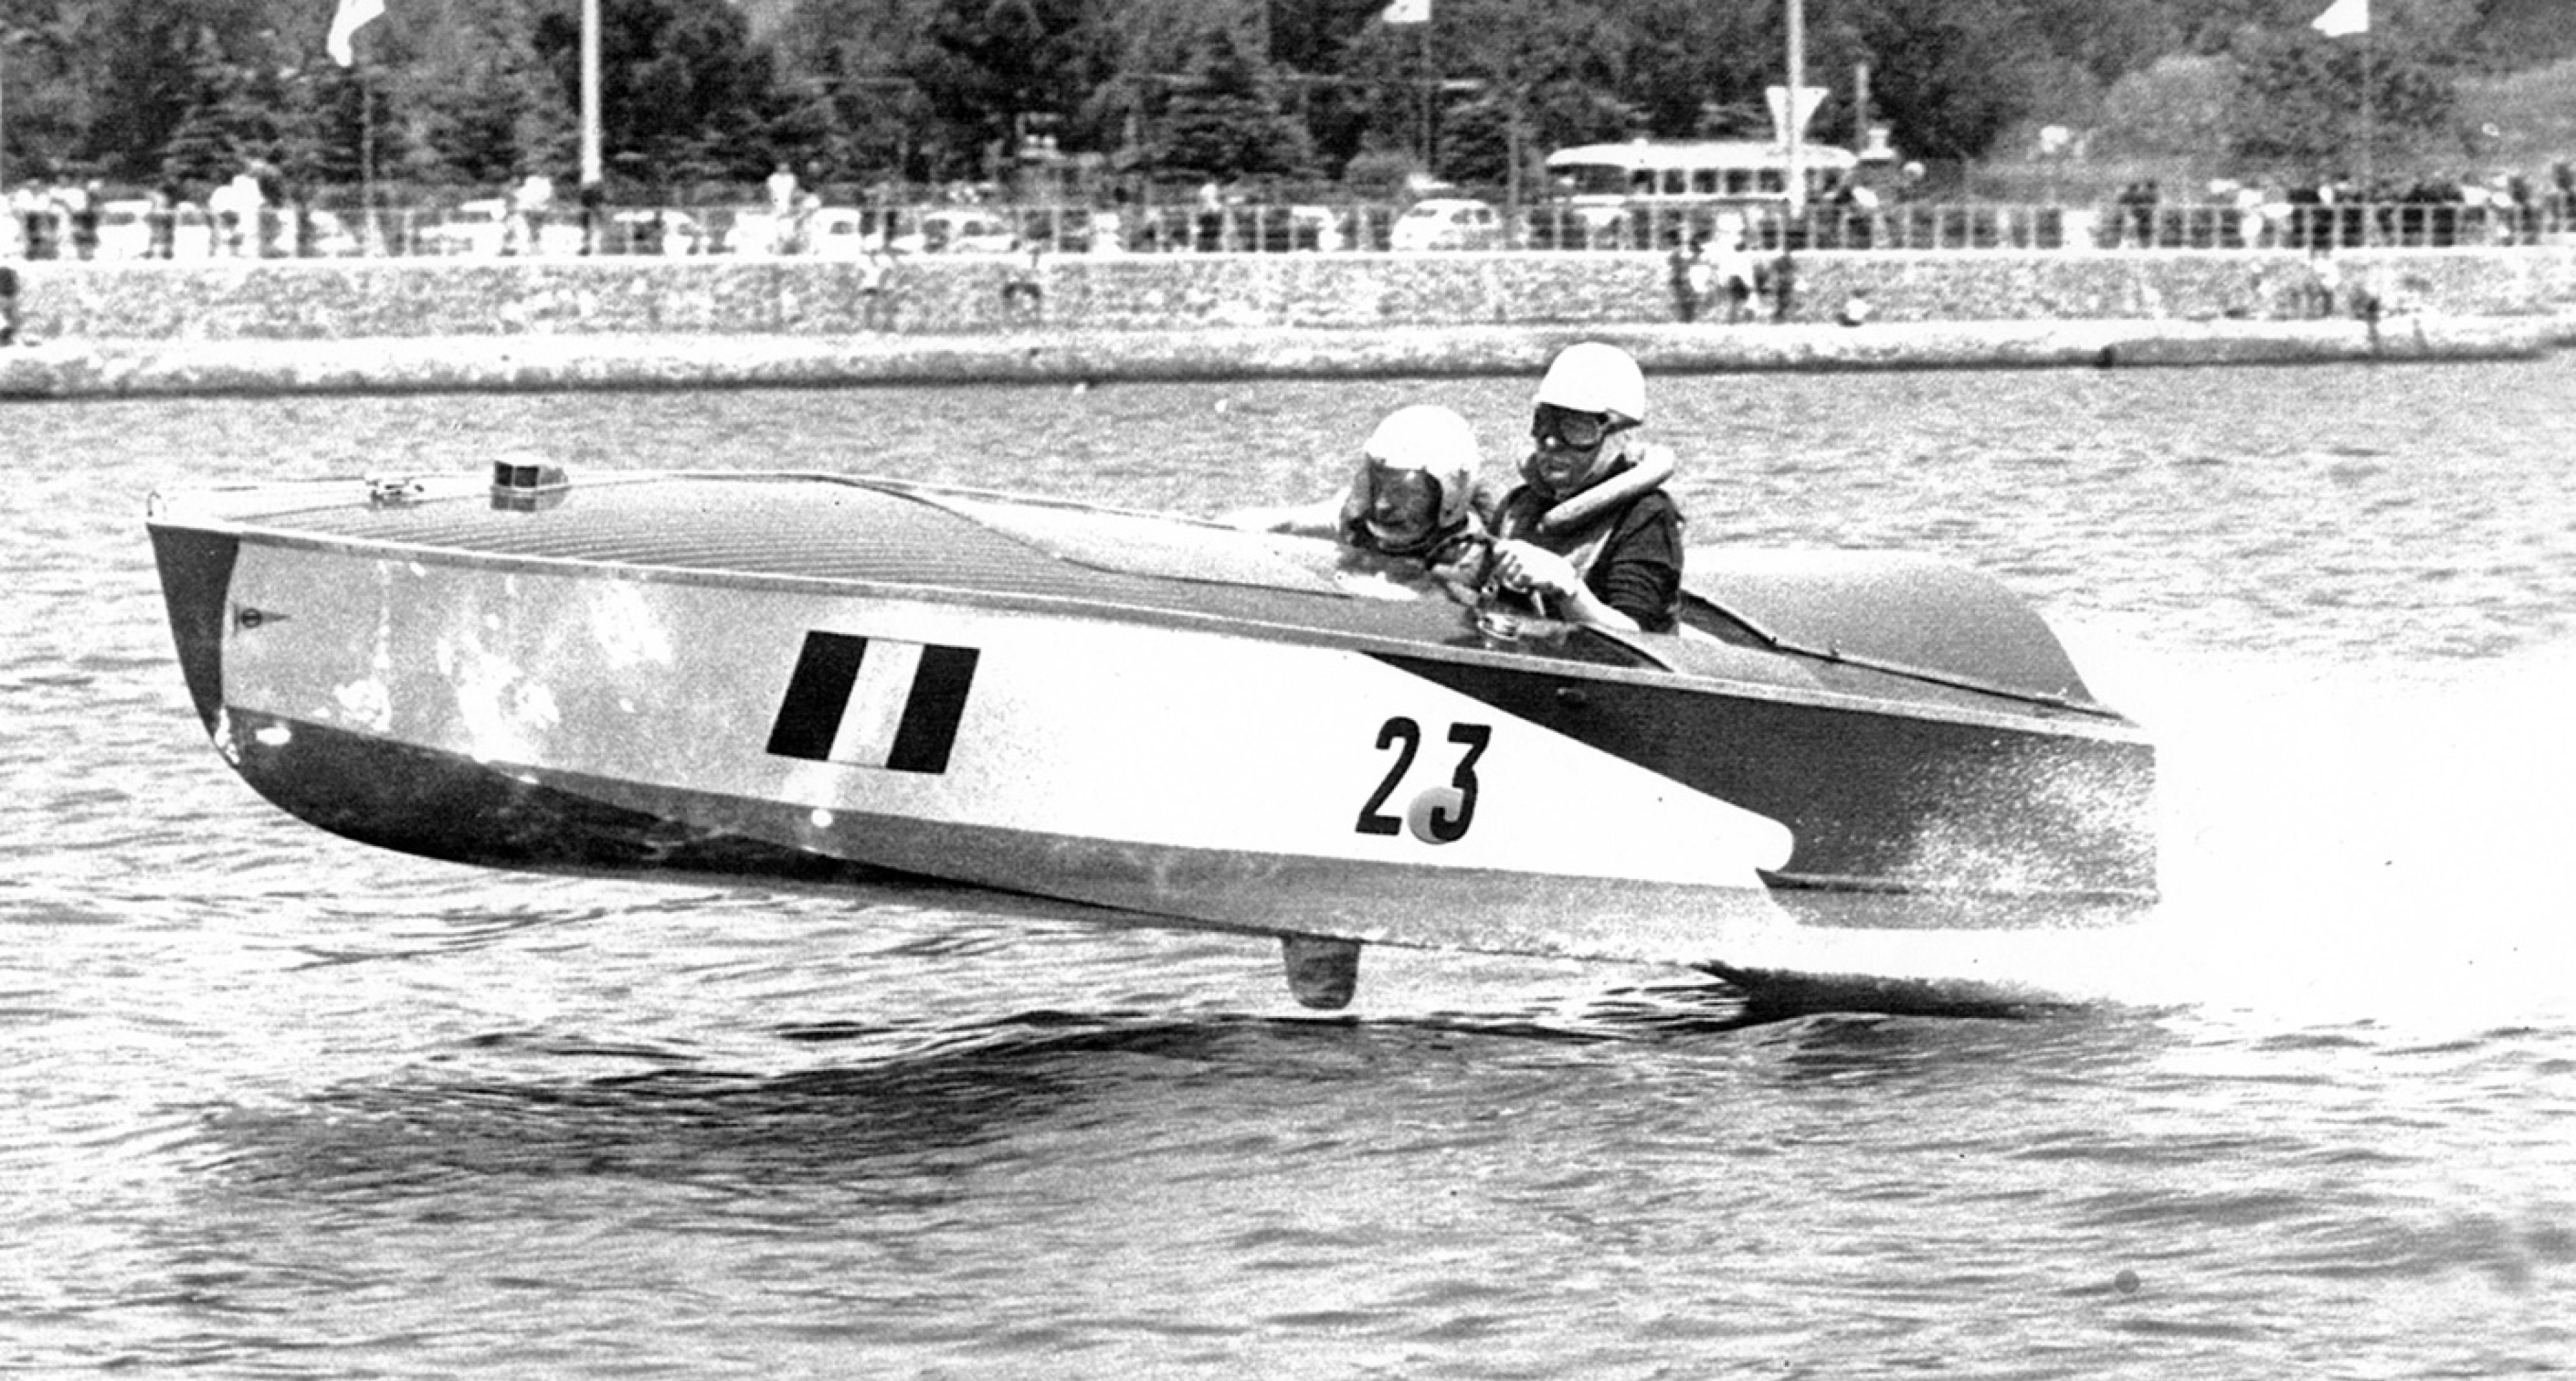 Maserati engines were used in powerboat racing in the 50s and 60s